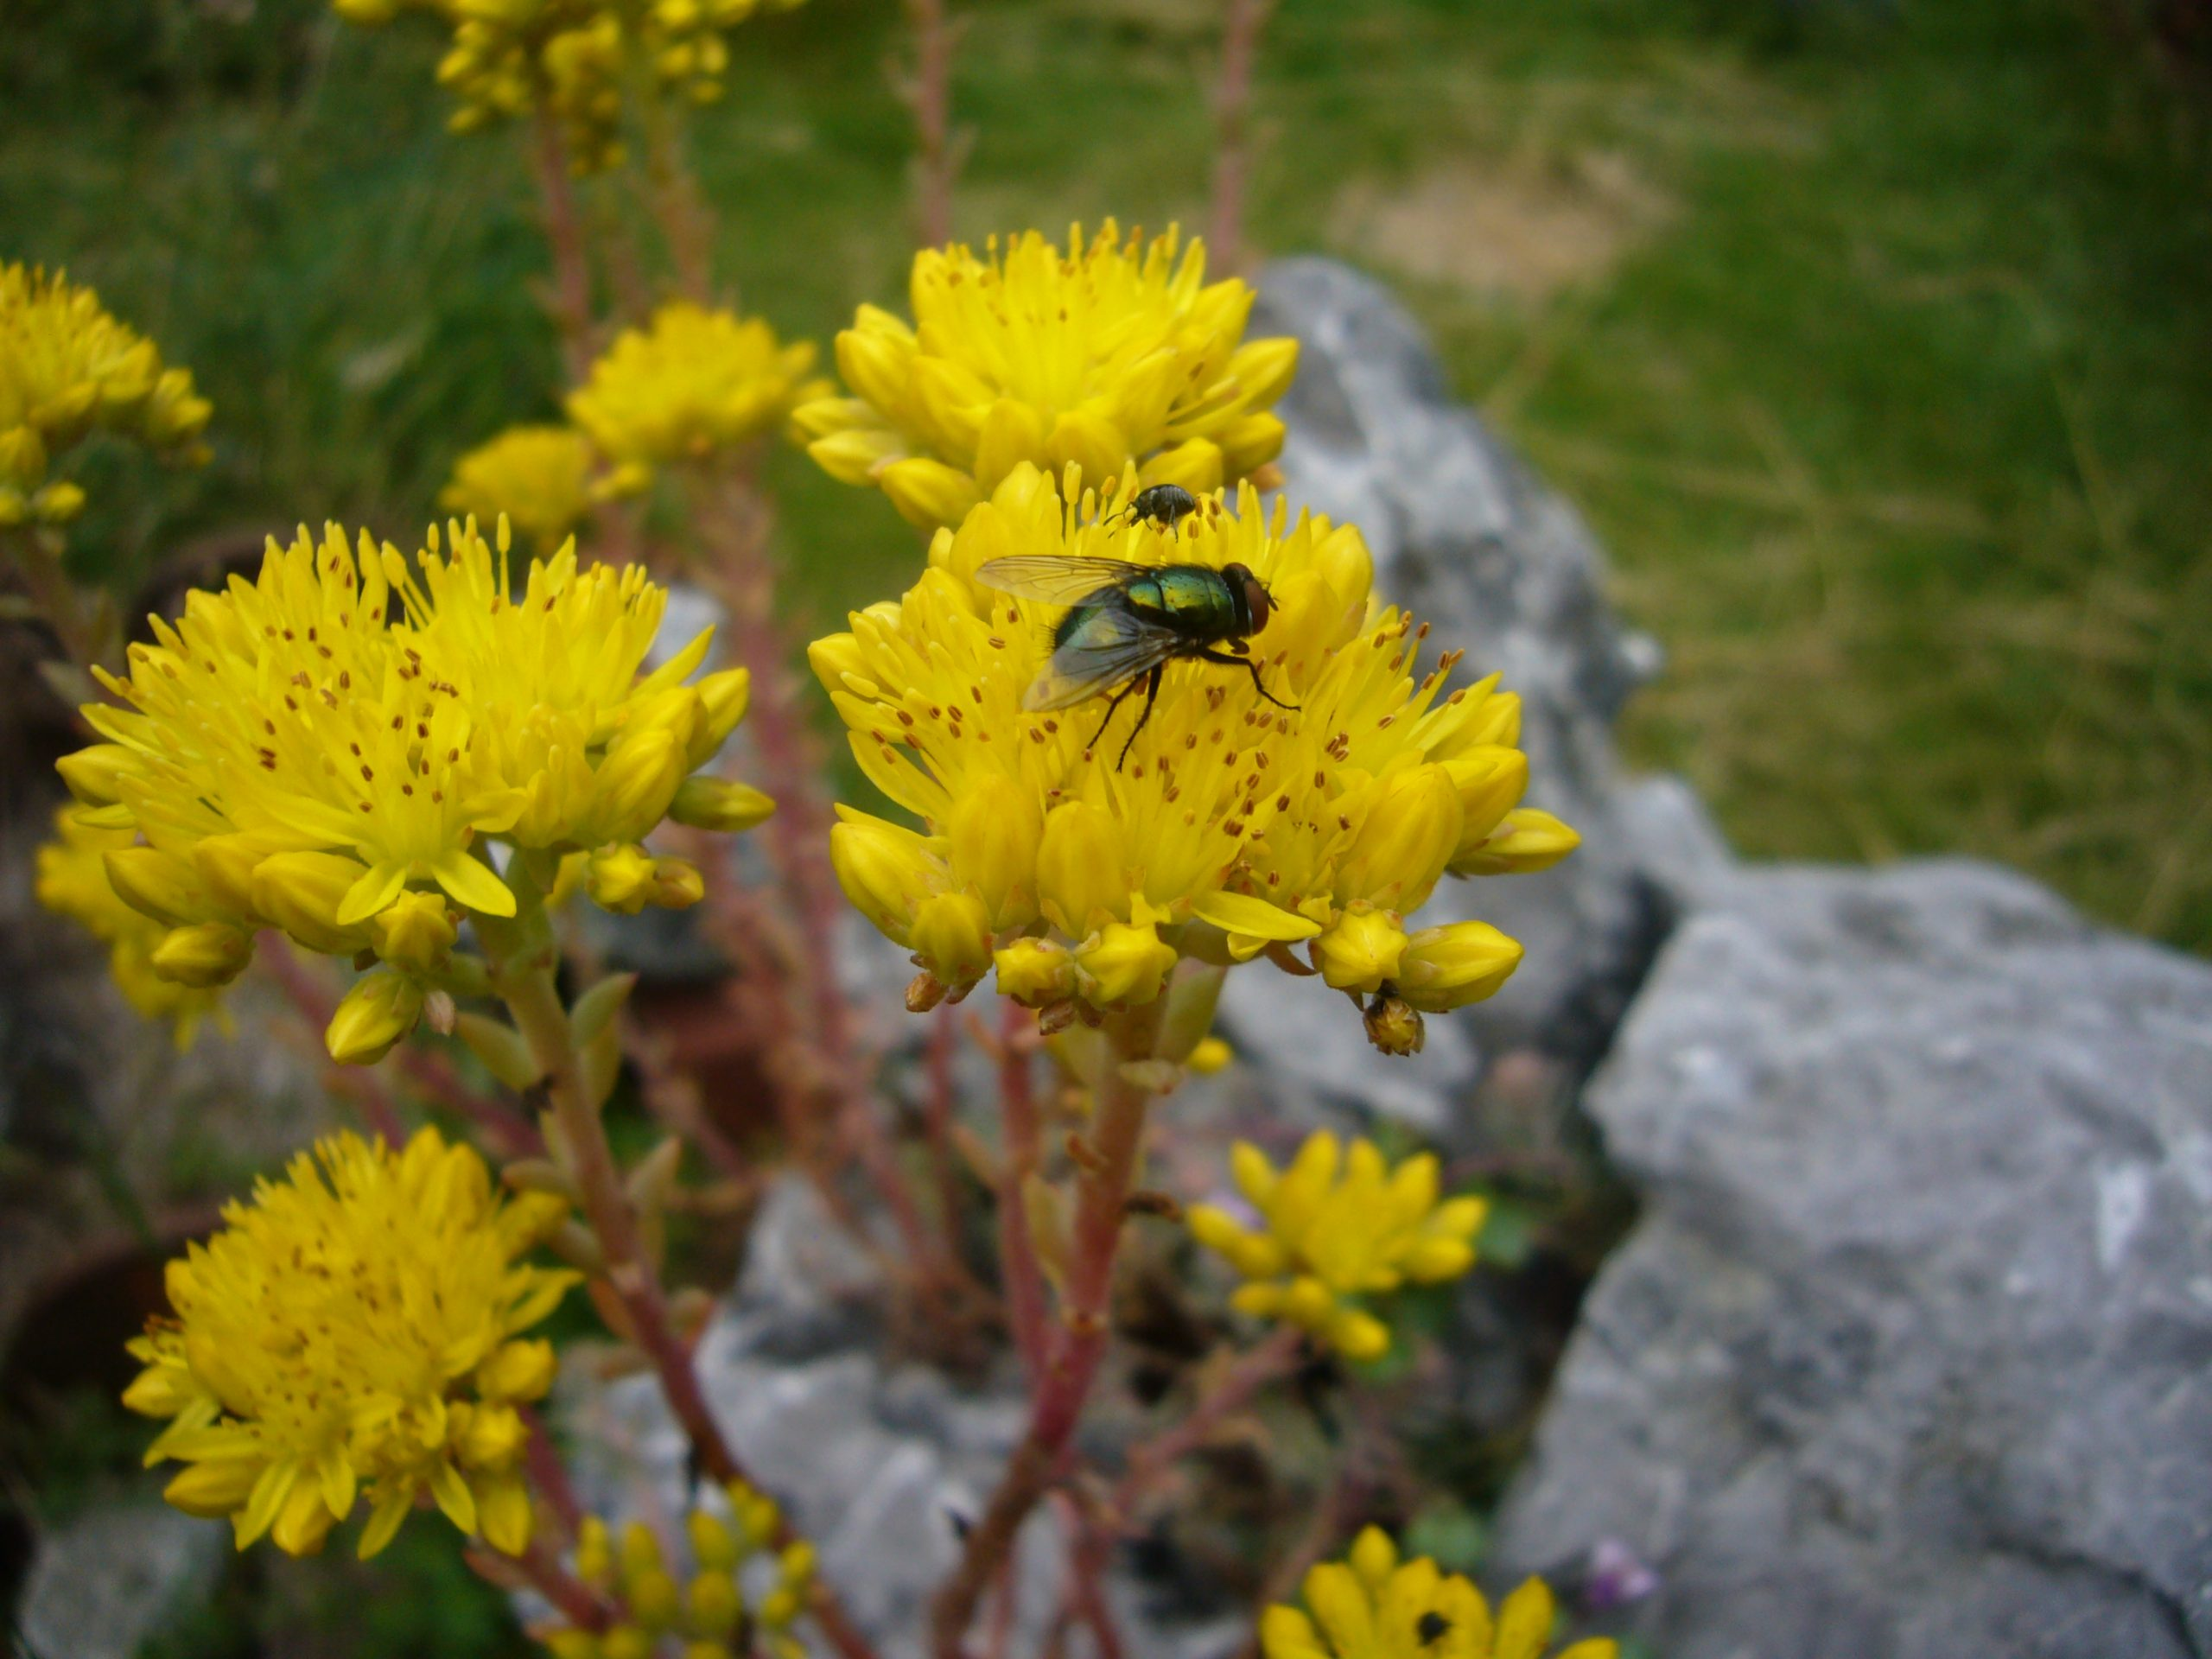 You are currently viewing Fliege – Neomyia cornicina